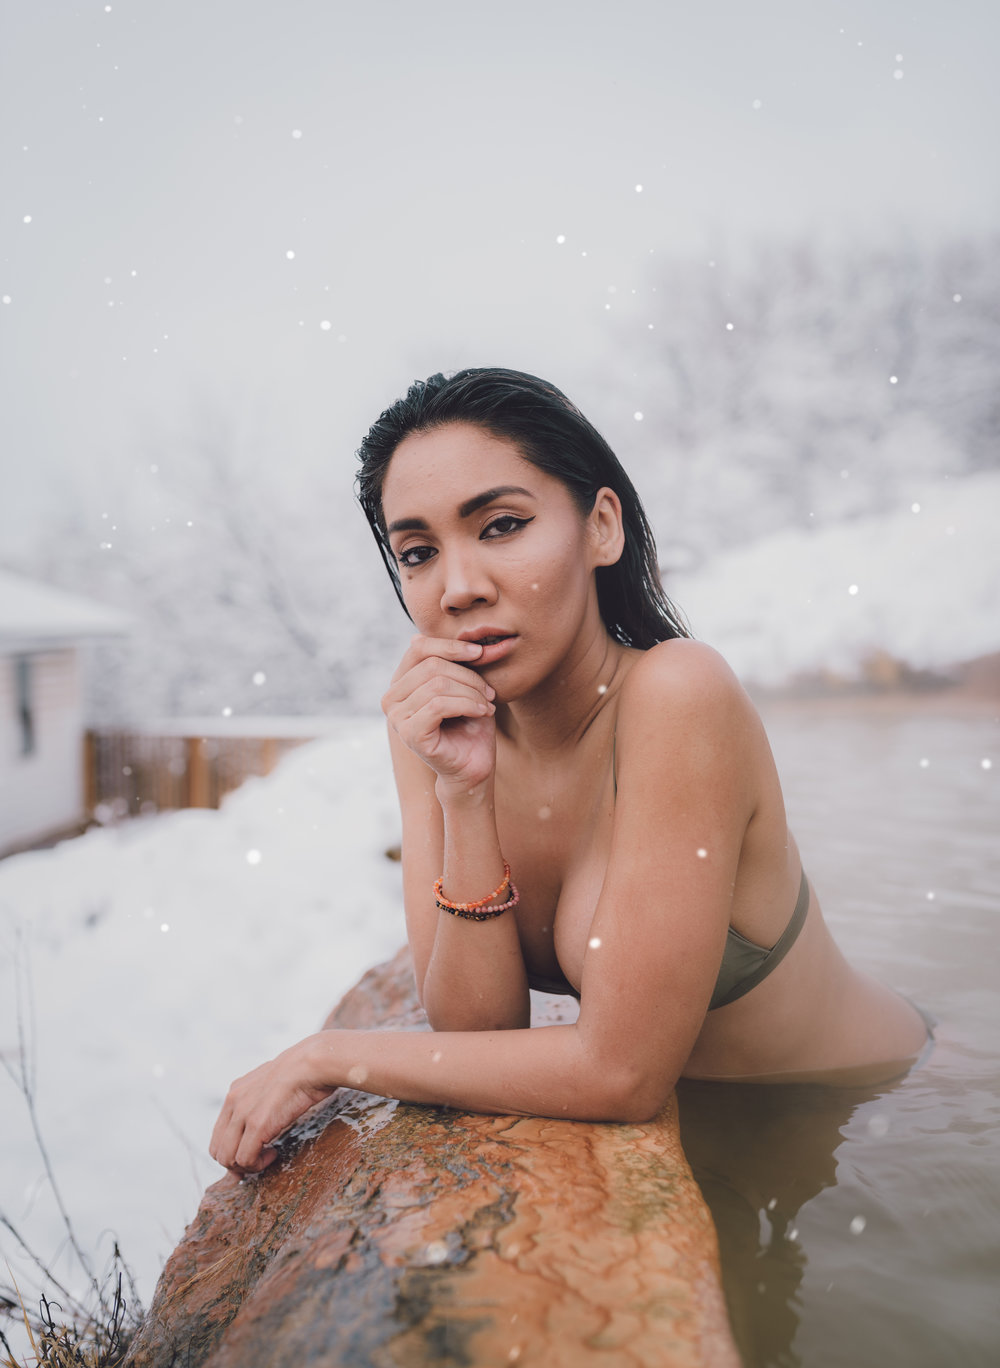 Megan Hot Spring Snow 5.jpg